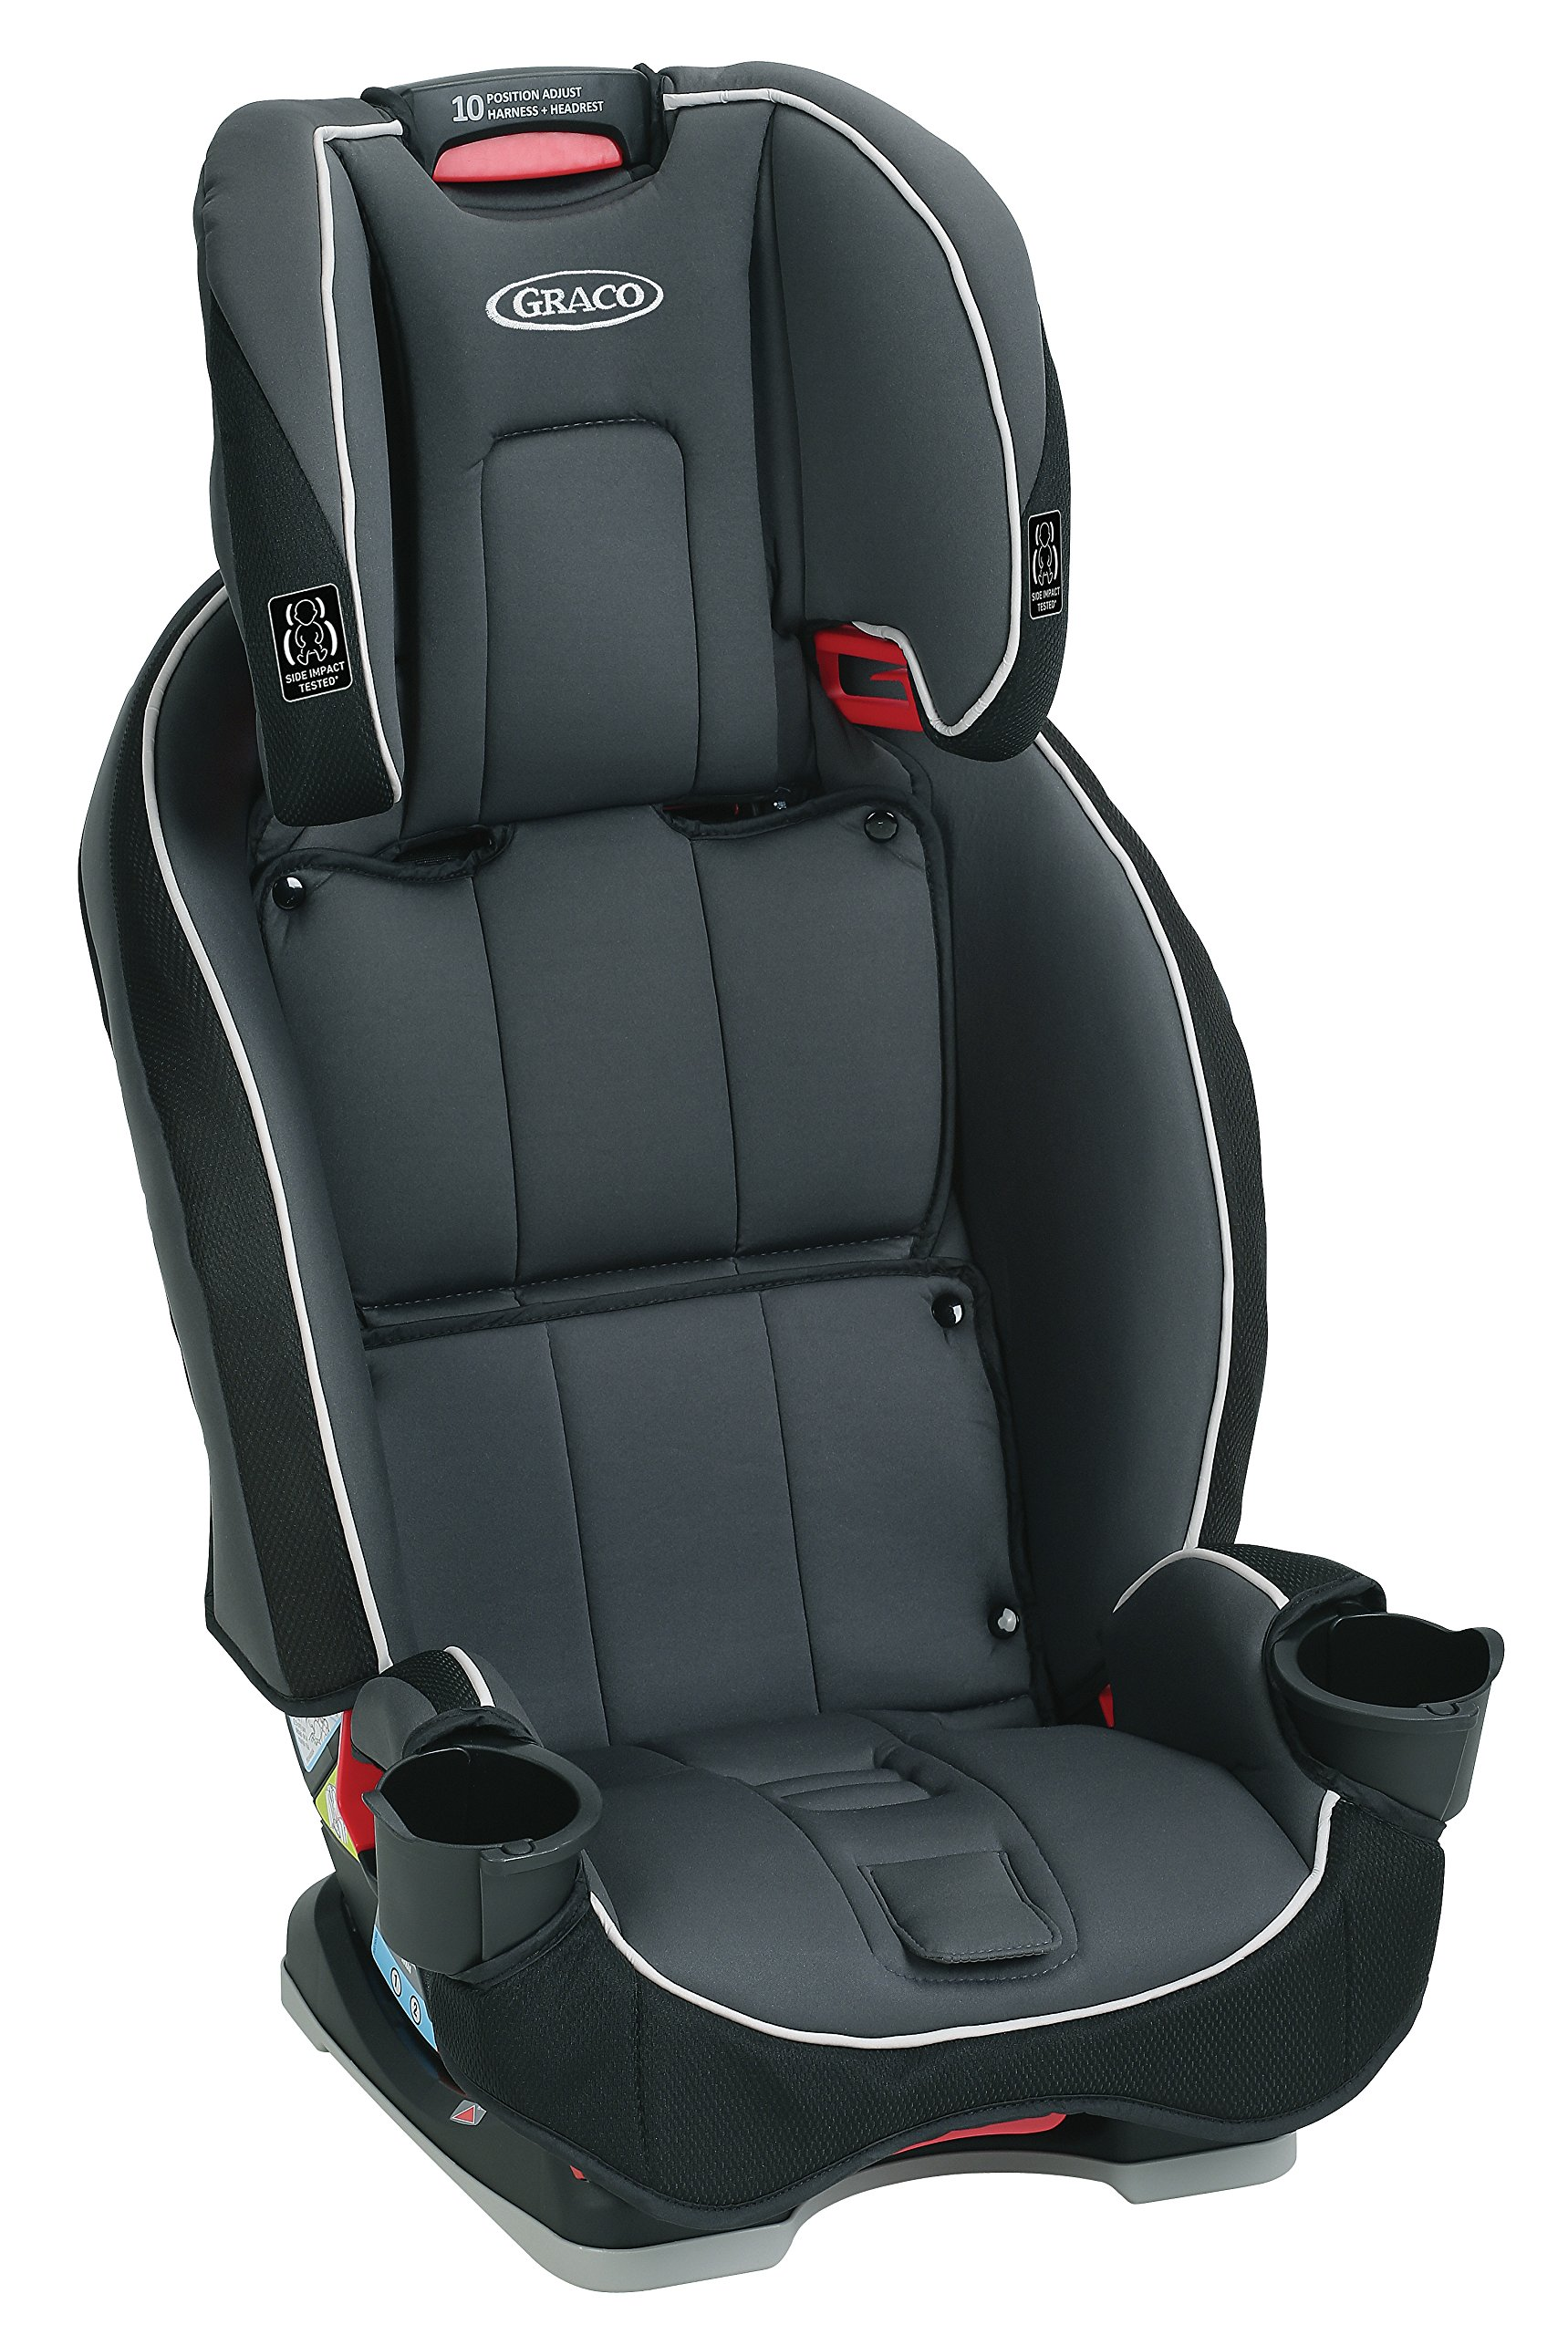 Graco SlimFit 3-in-1 Convertible Car Seat, Darcie by Graco (Image #4)